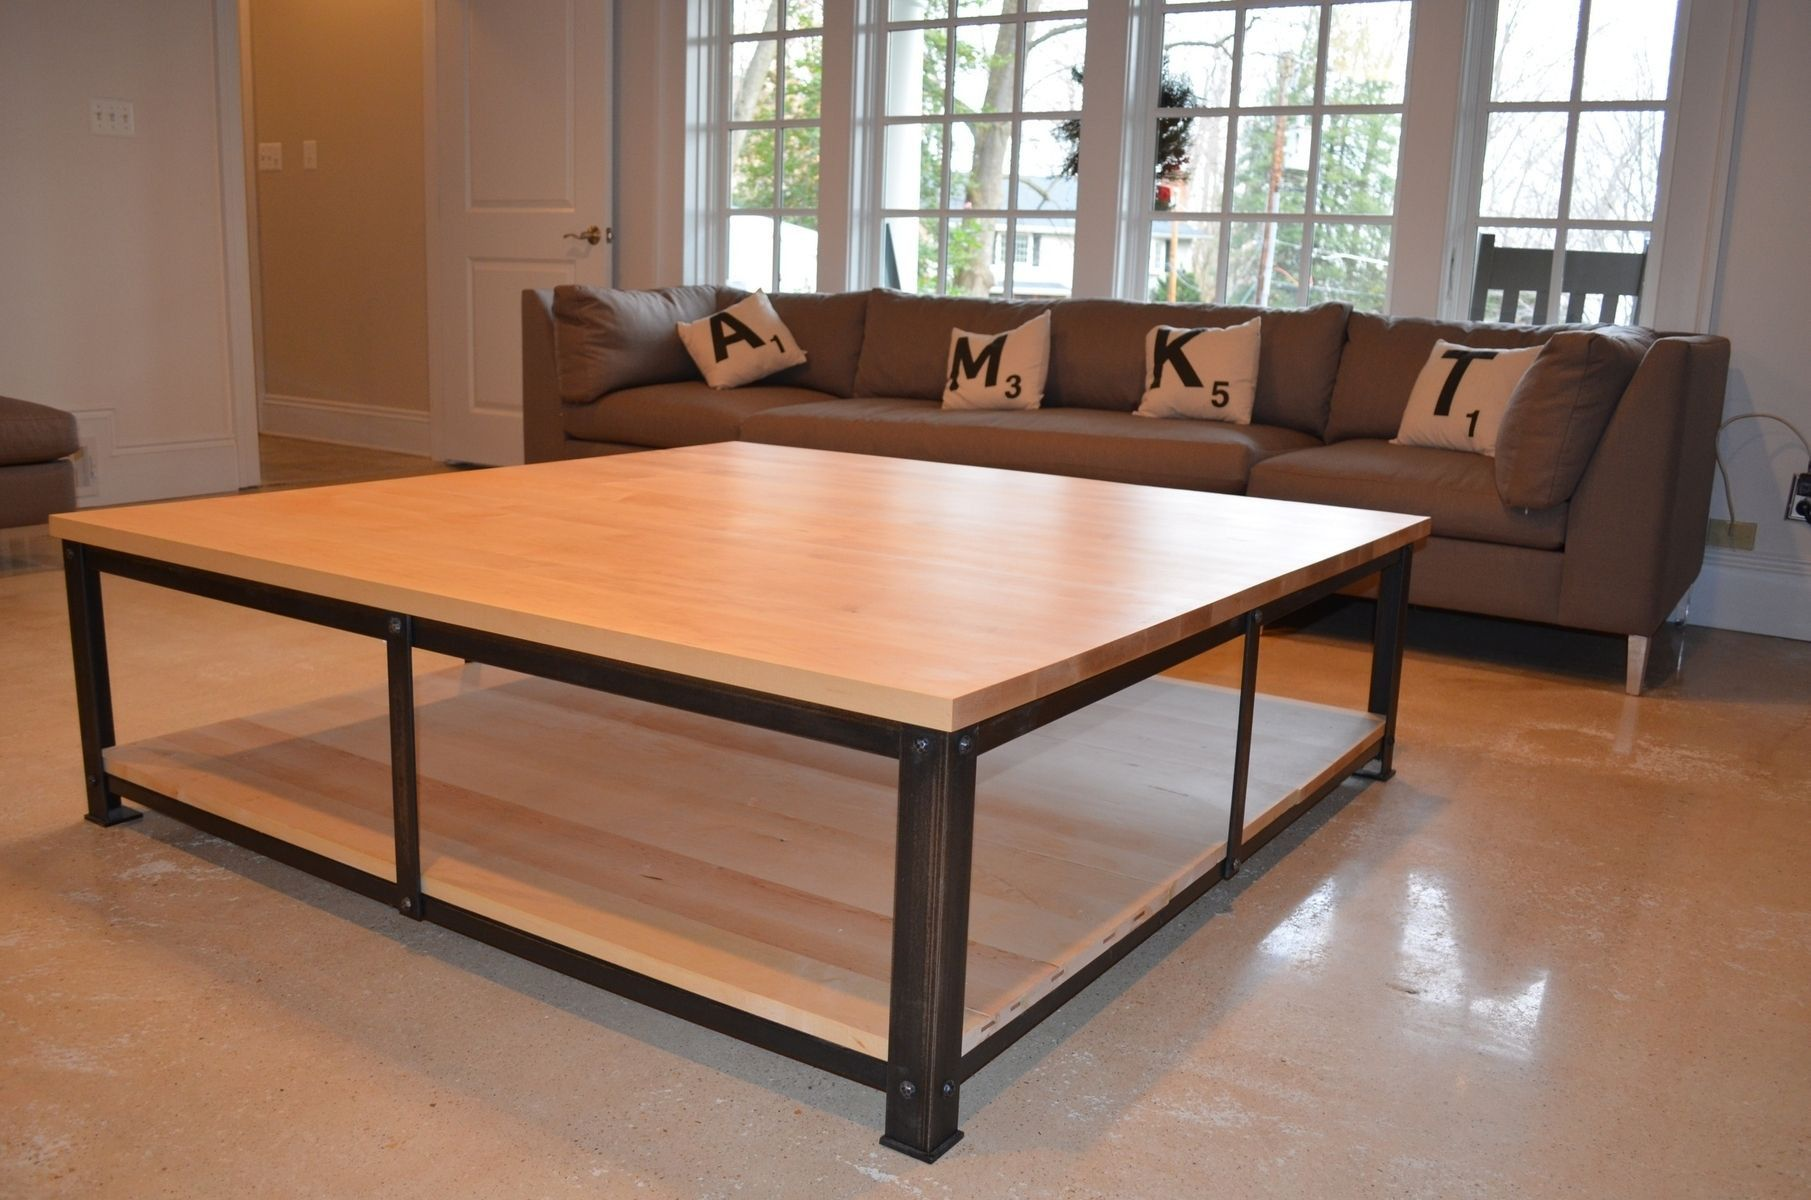 20 60 Inch Square Coffee Table Americas Best Furniture Check More At Http Www Buzzfolders Com 60 I Coffee Table Square Coffee Table Coffee Table Farmhouse